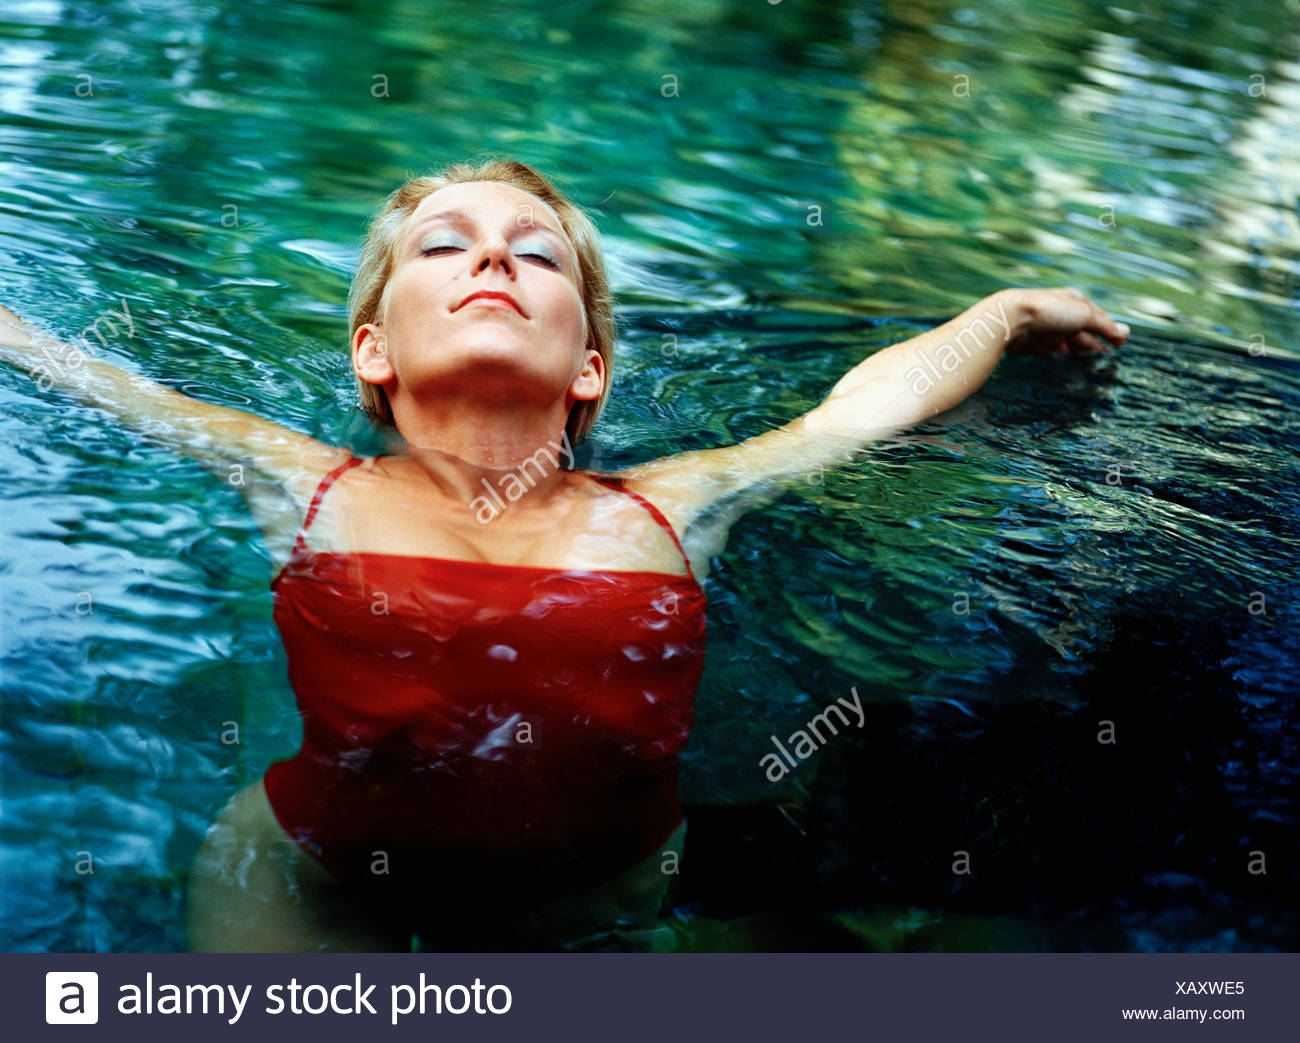 A Scandinavian woman in the water. - Stock Image